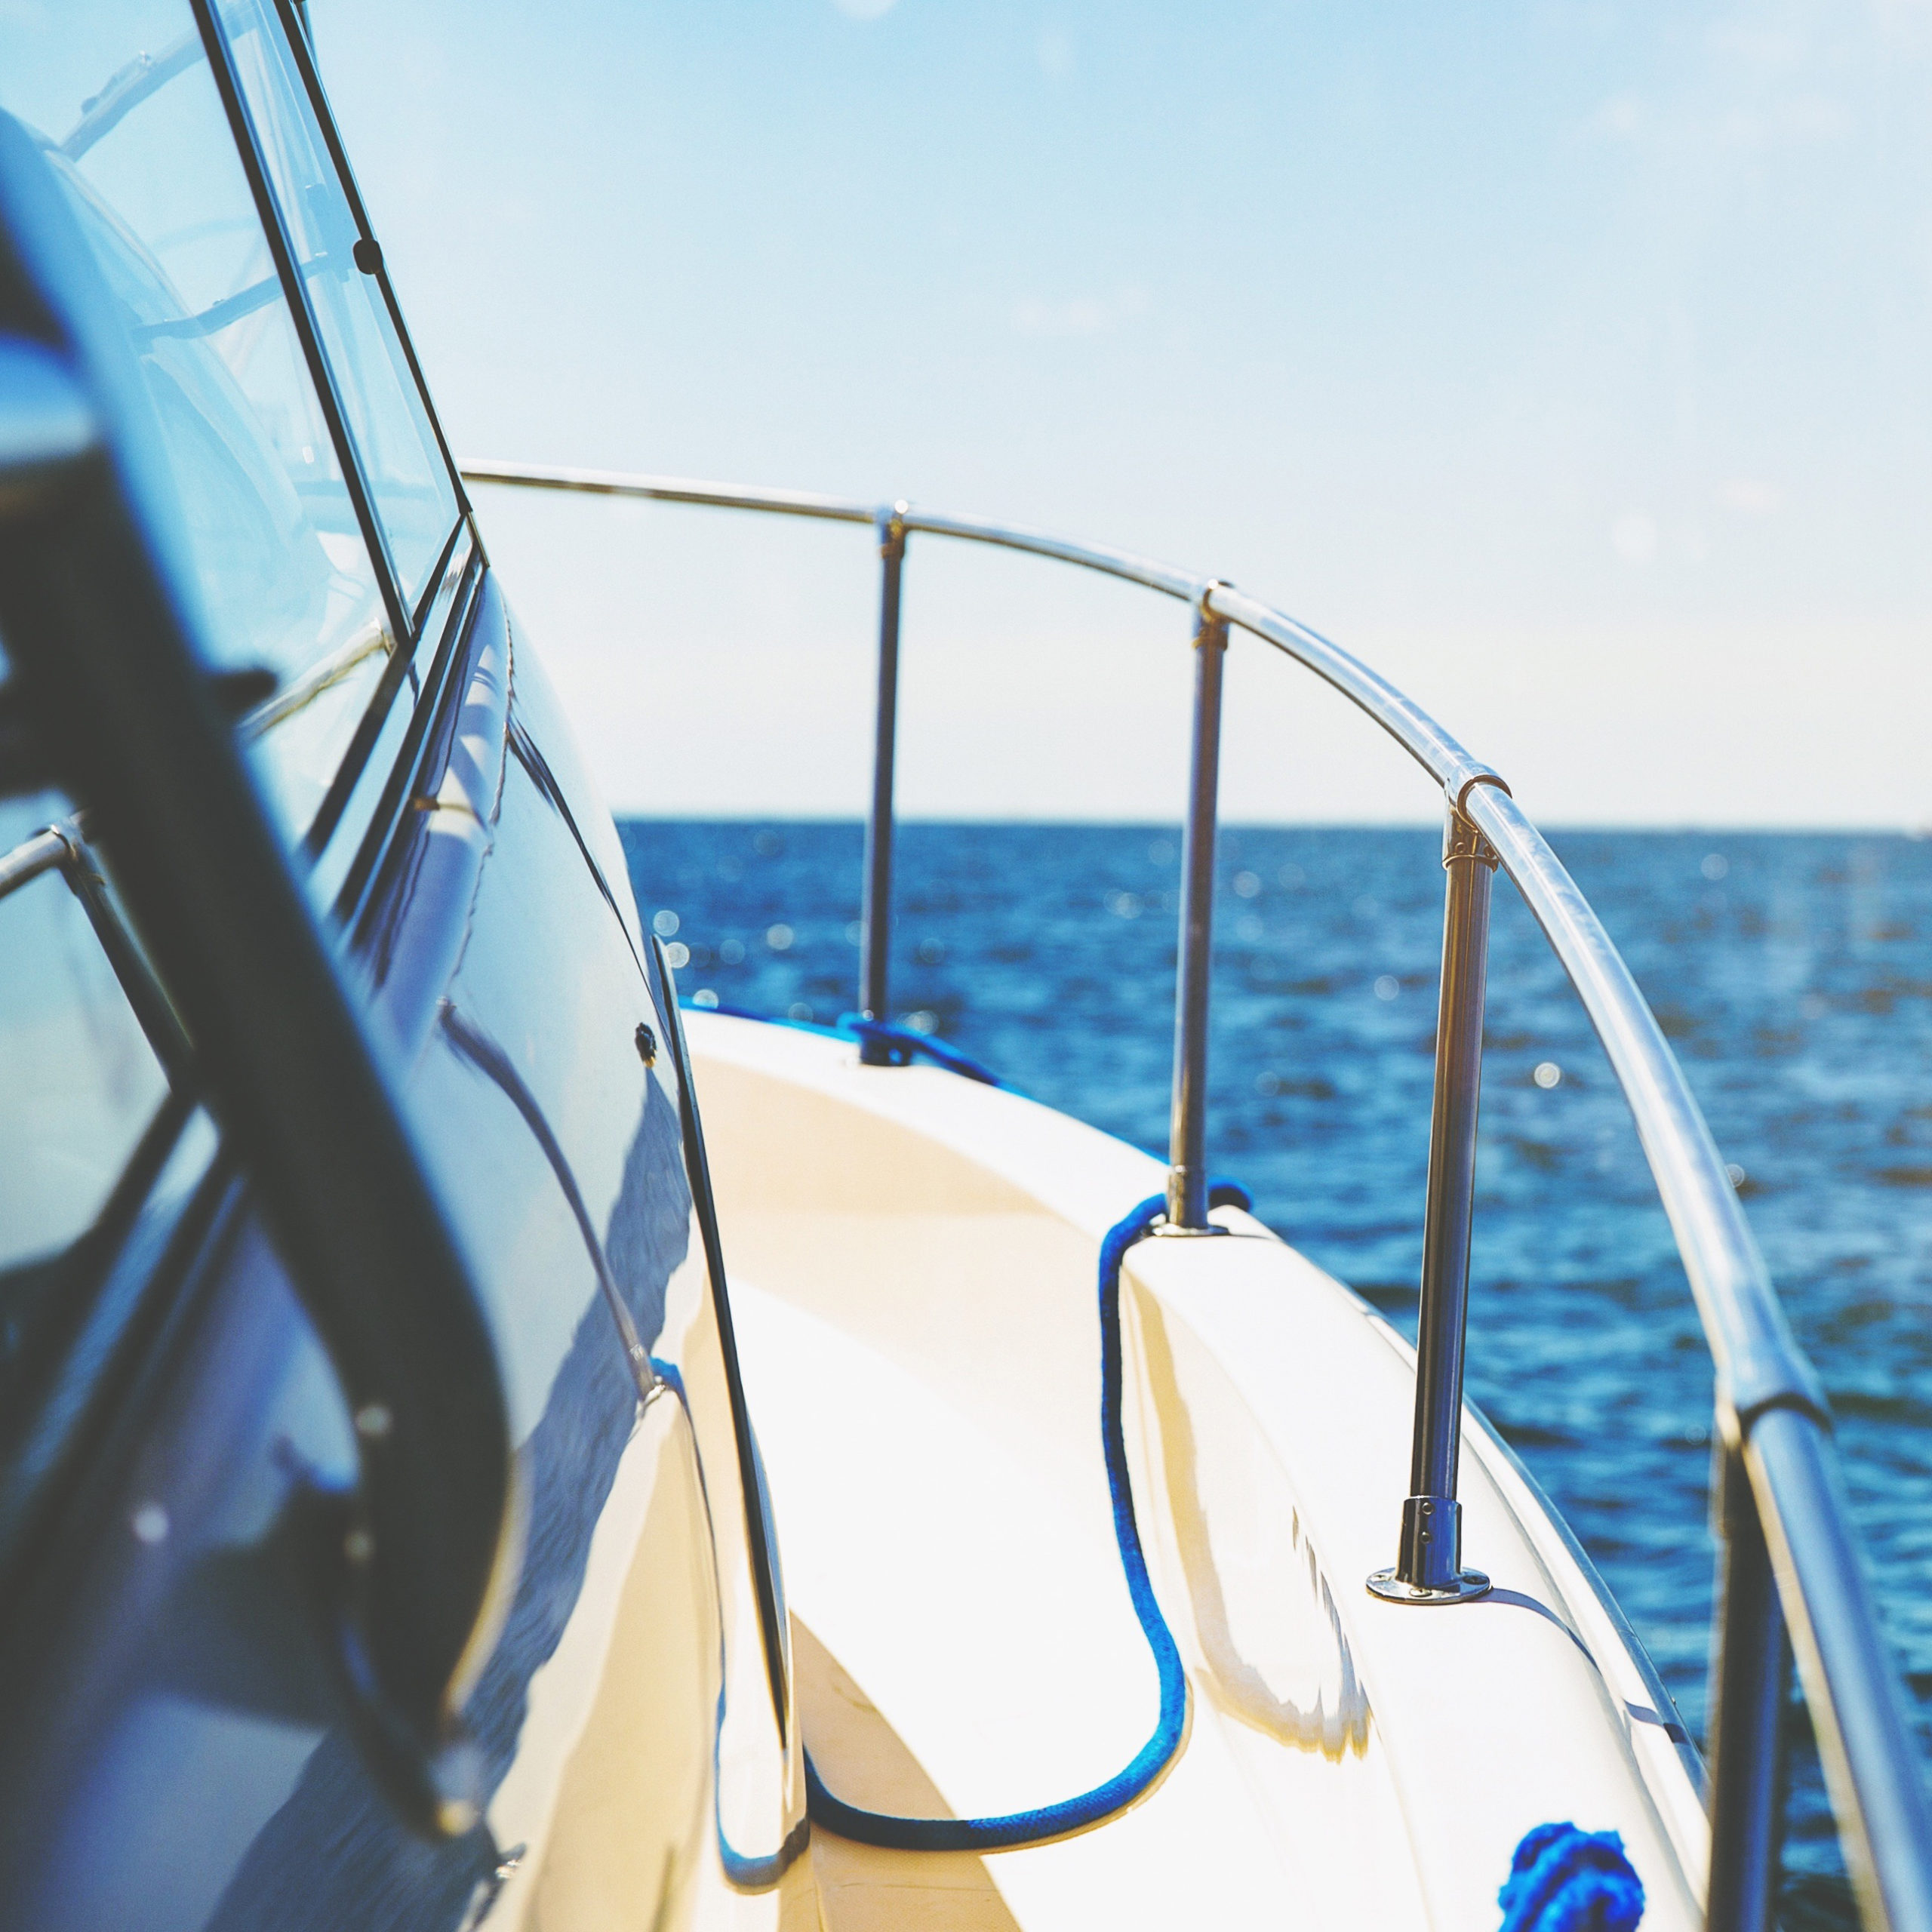 Launch boat out at sea with pleasurecraft insurance